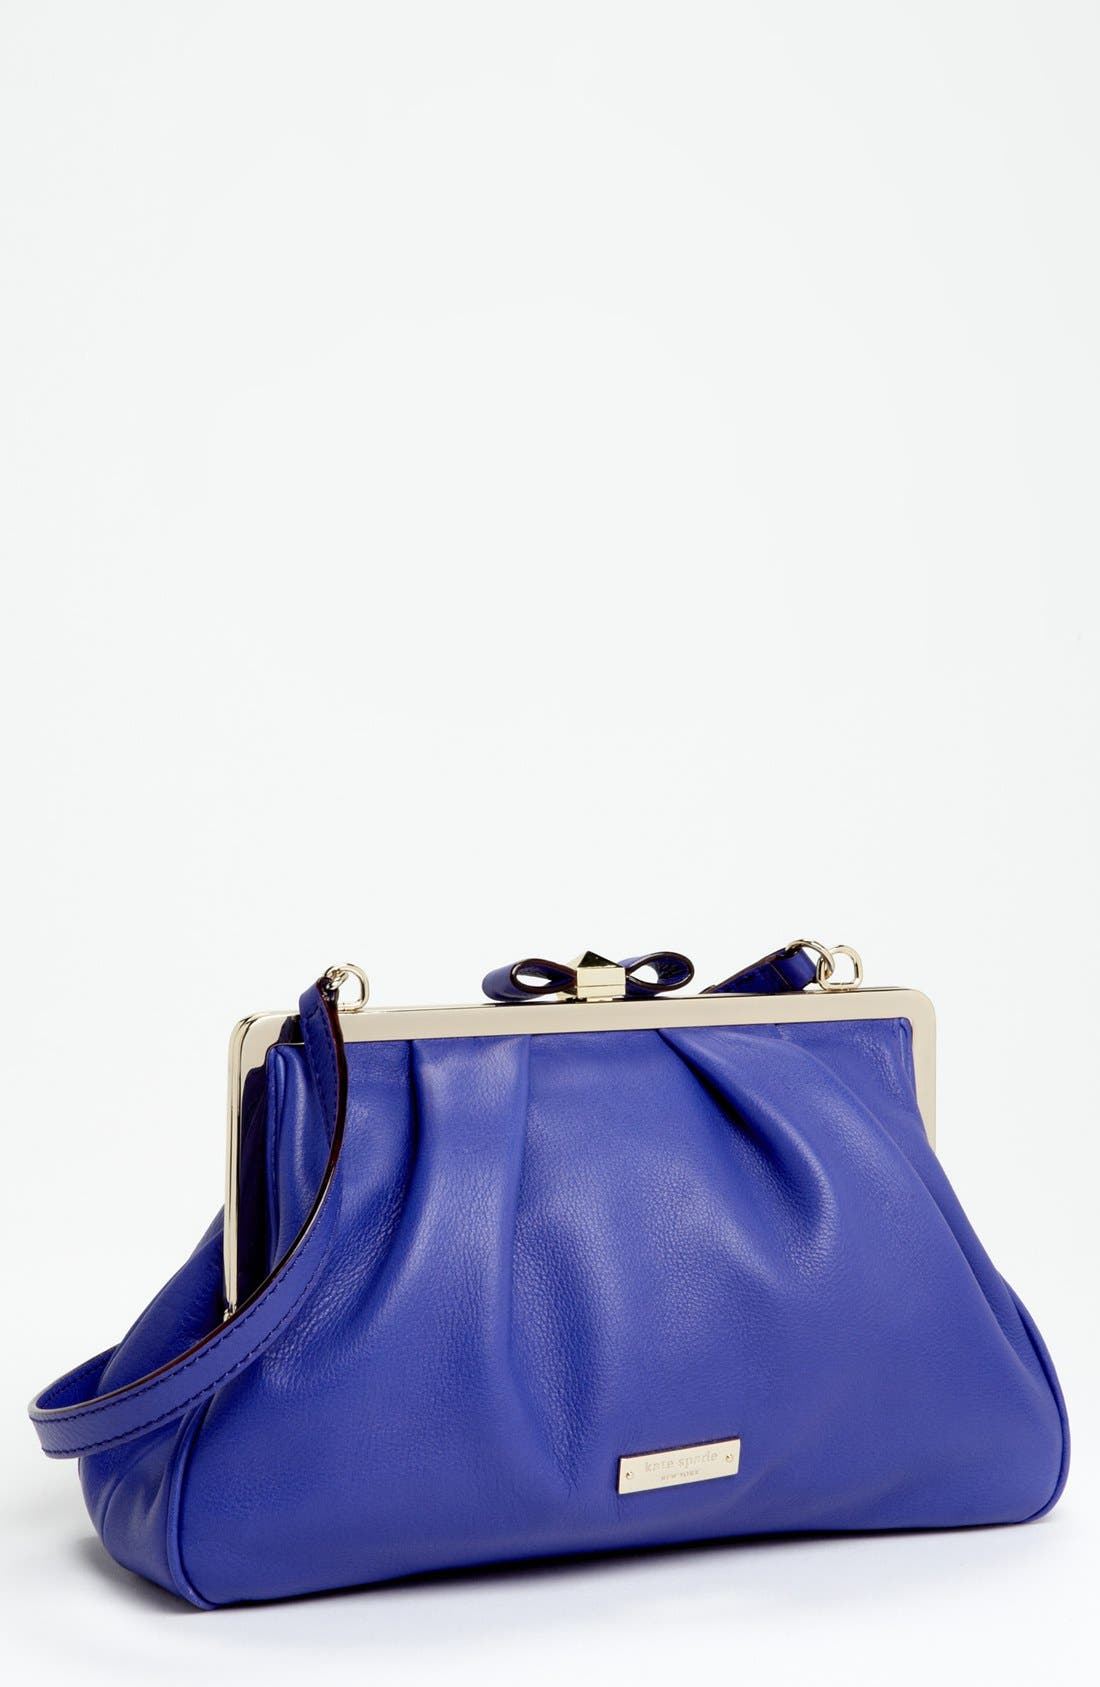 Alternate Image 1 Selected - kate spade new york 'dixie street - lolla' leather shoulder bag